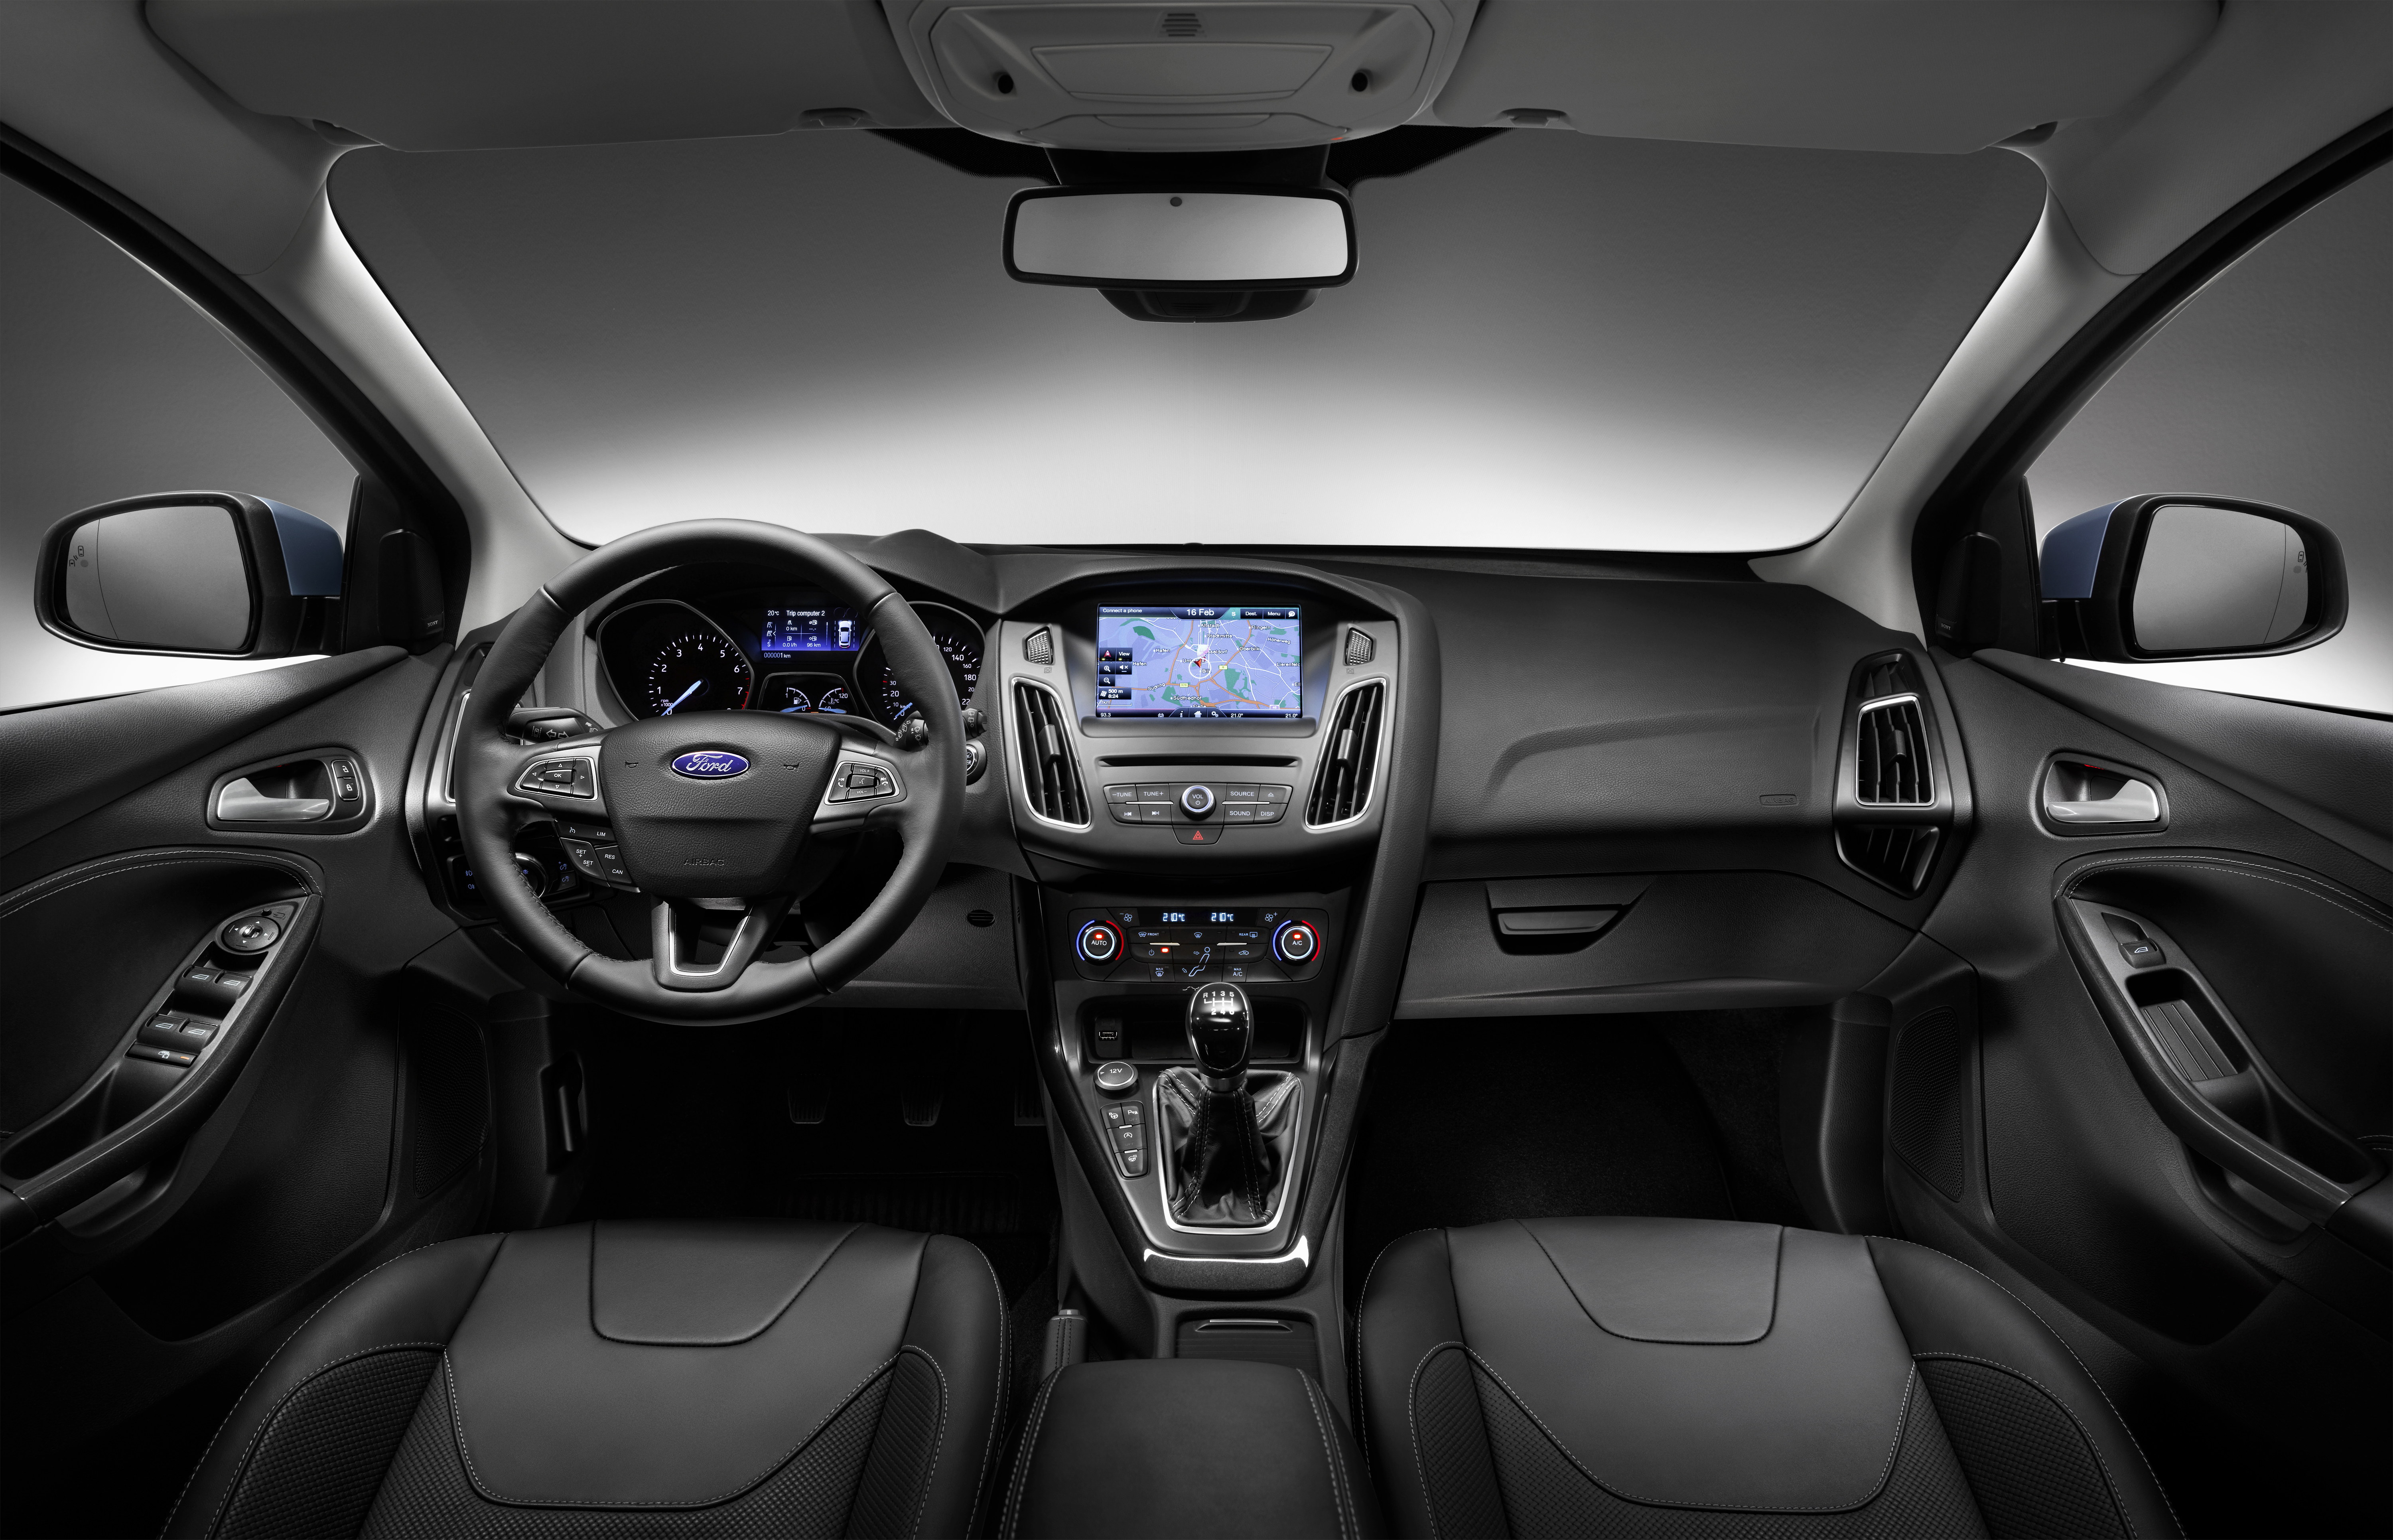 the new ford focus available in kenya   techmoran